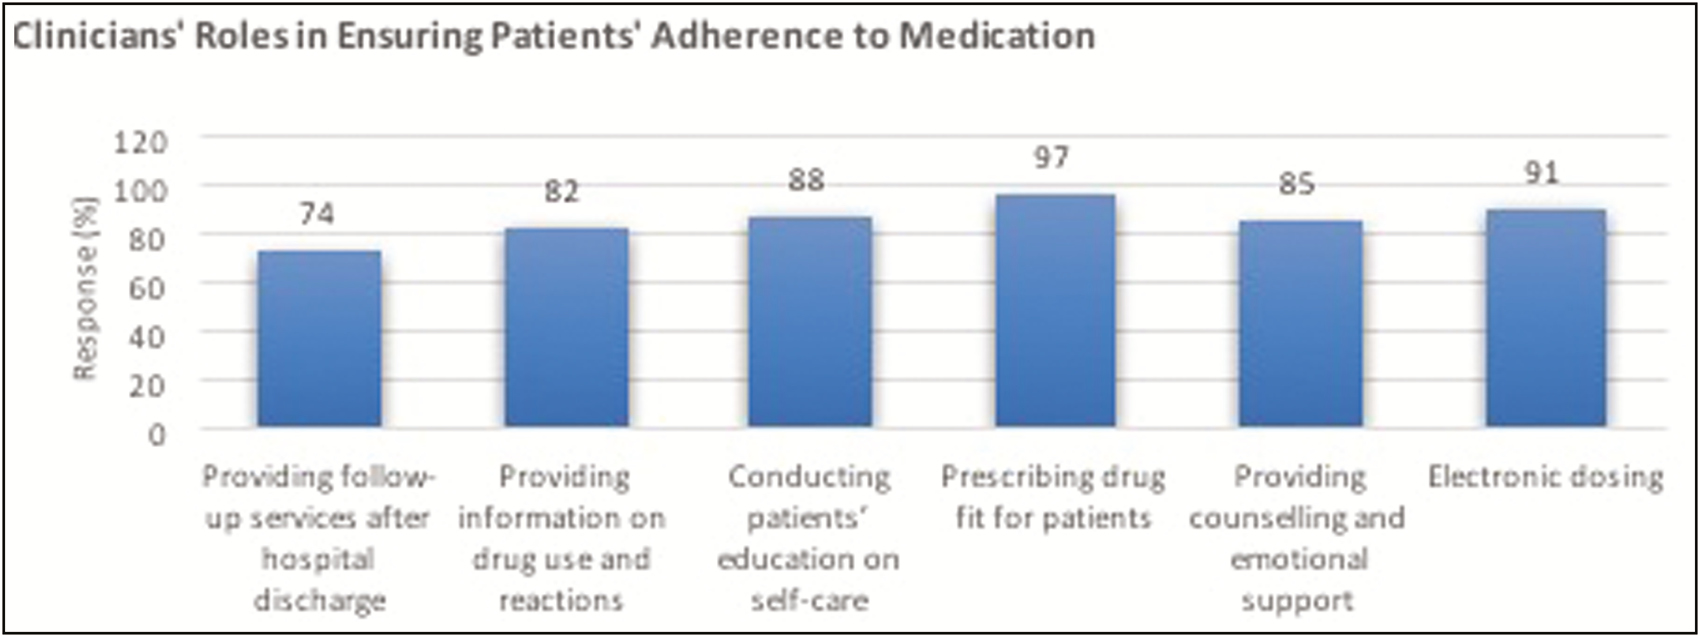 Figure 8: Clinicians' roles in ensuring patients' adherence to medication